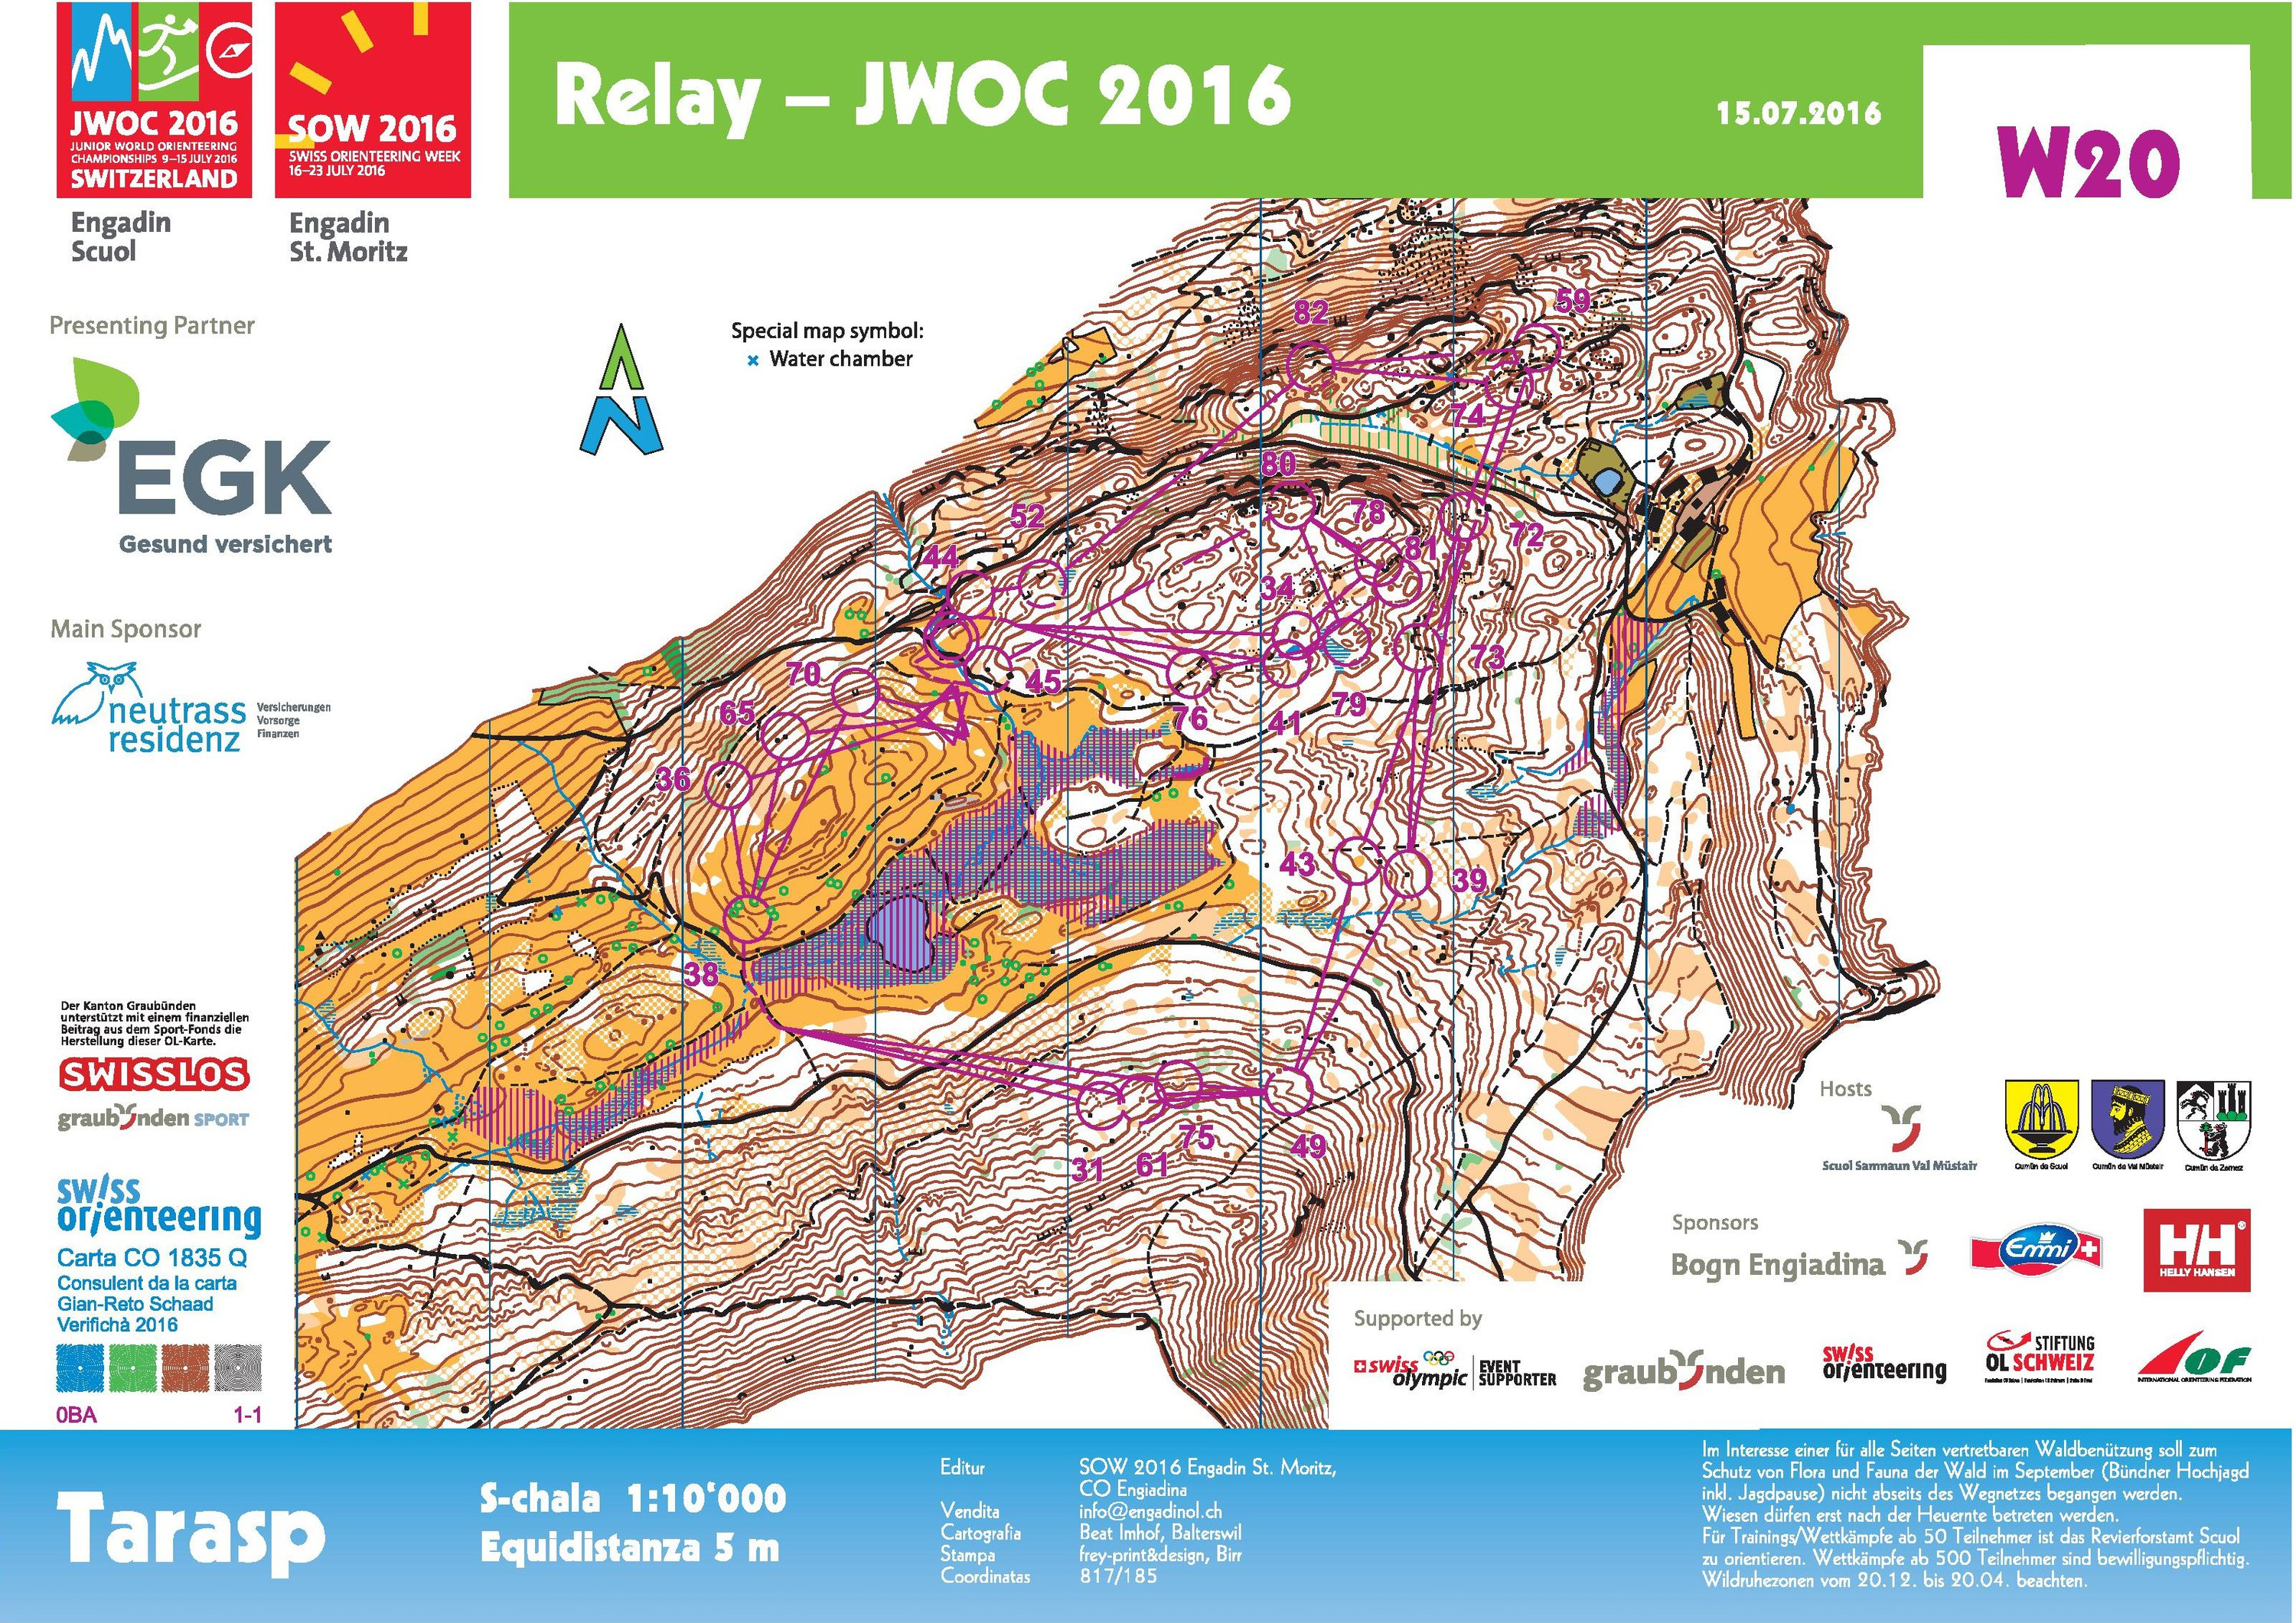 Howto convert any orienteering map to a garmin map world of o news jwoc 2016 relay maps and results biocorpaavc